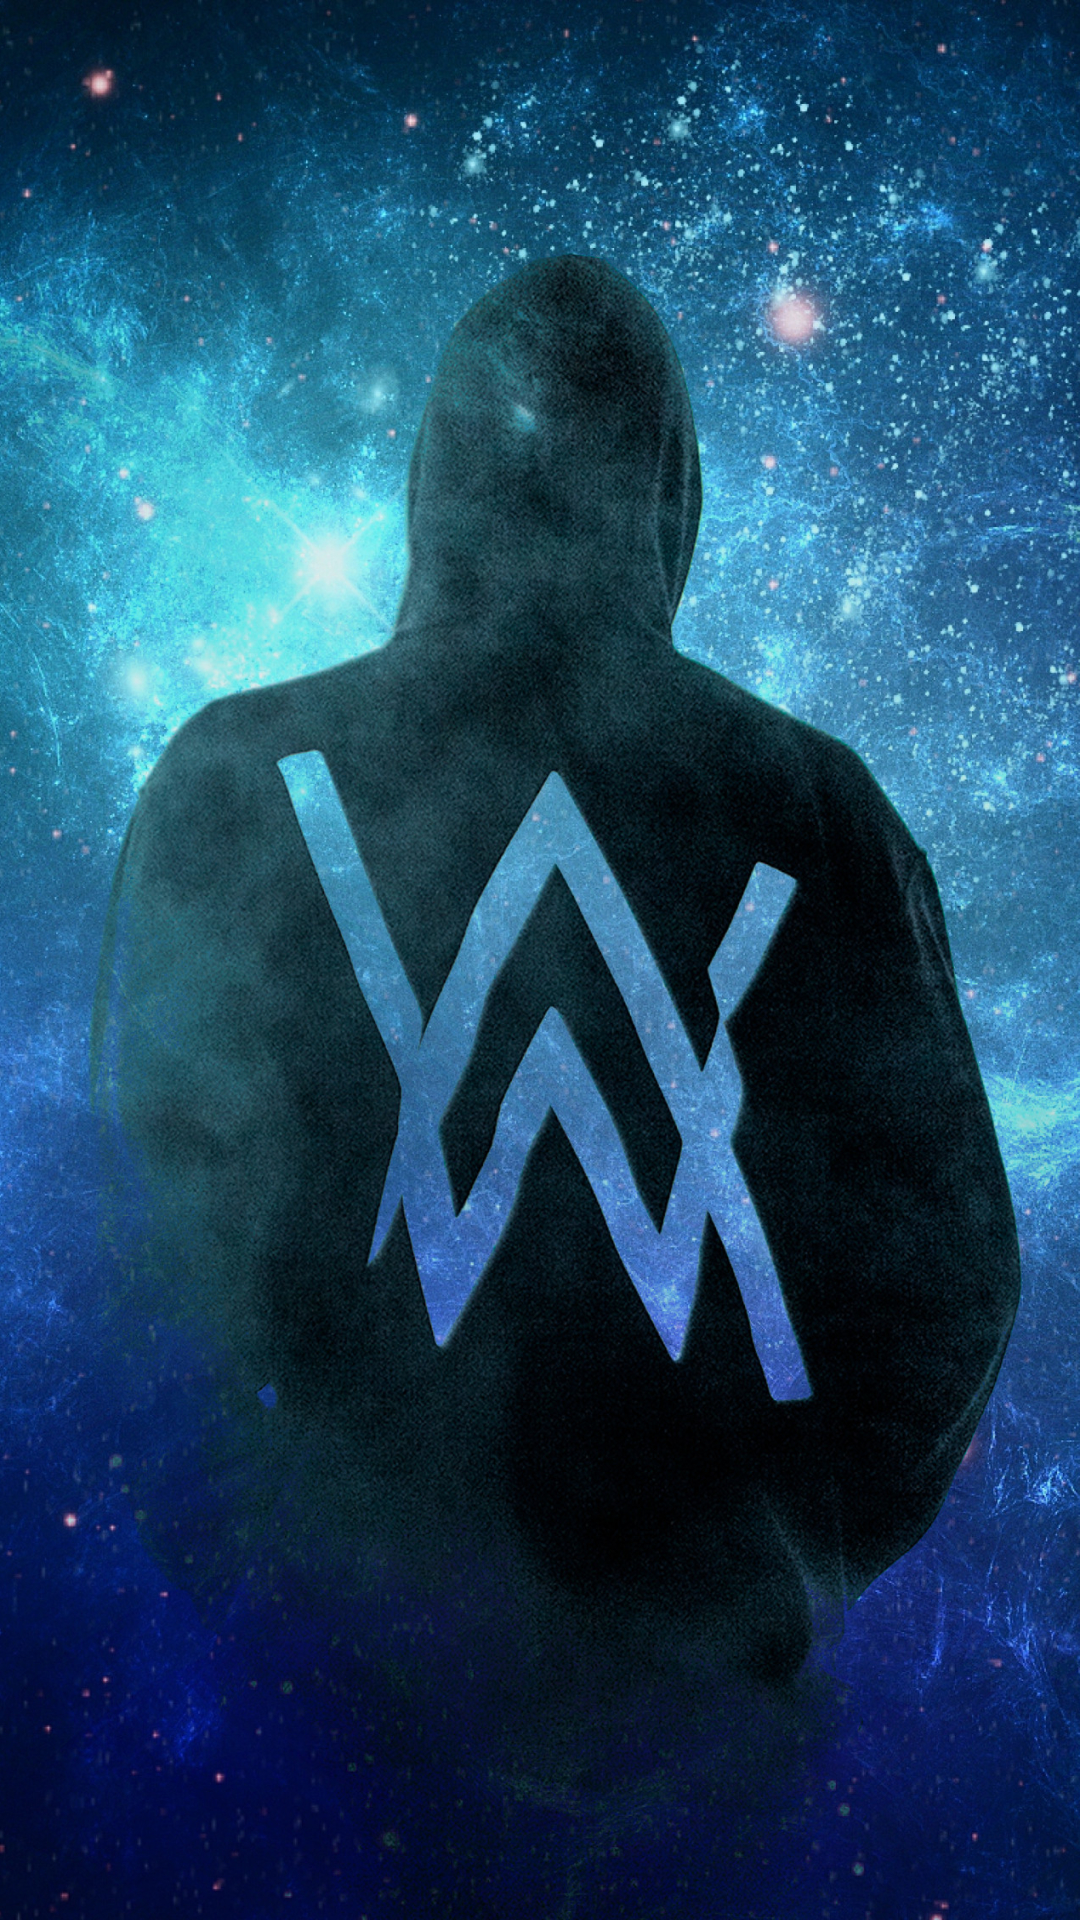 Lumia 535   MusicAlan Walker   Wallpaper ID 635222 1080x1920